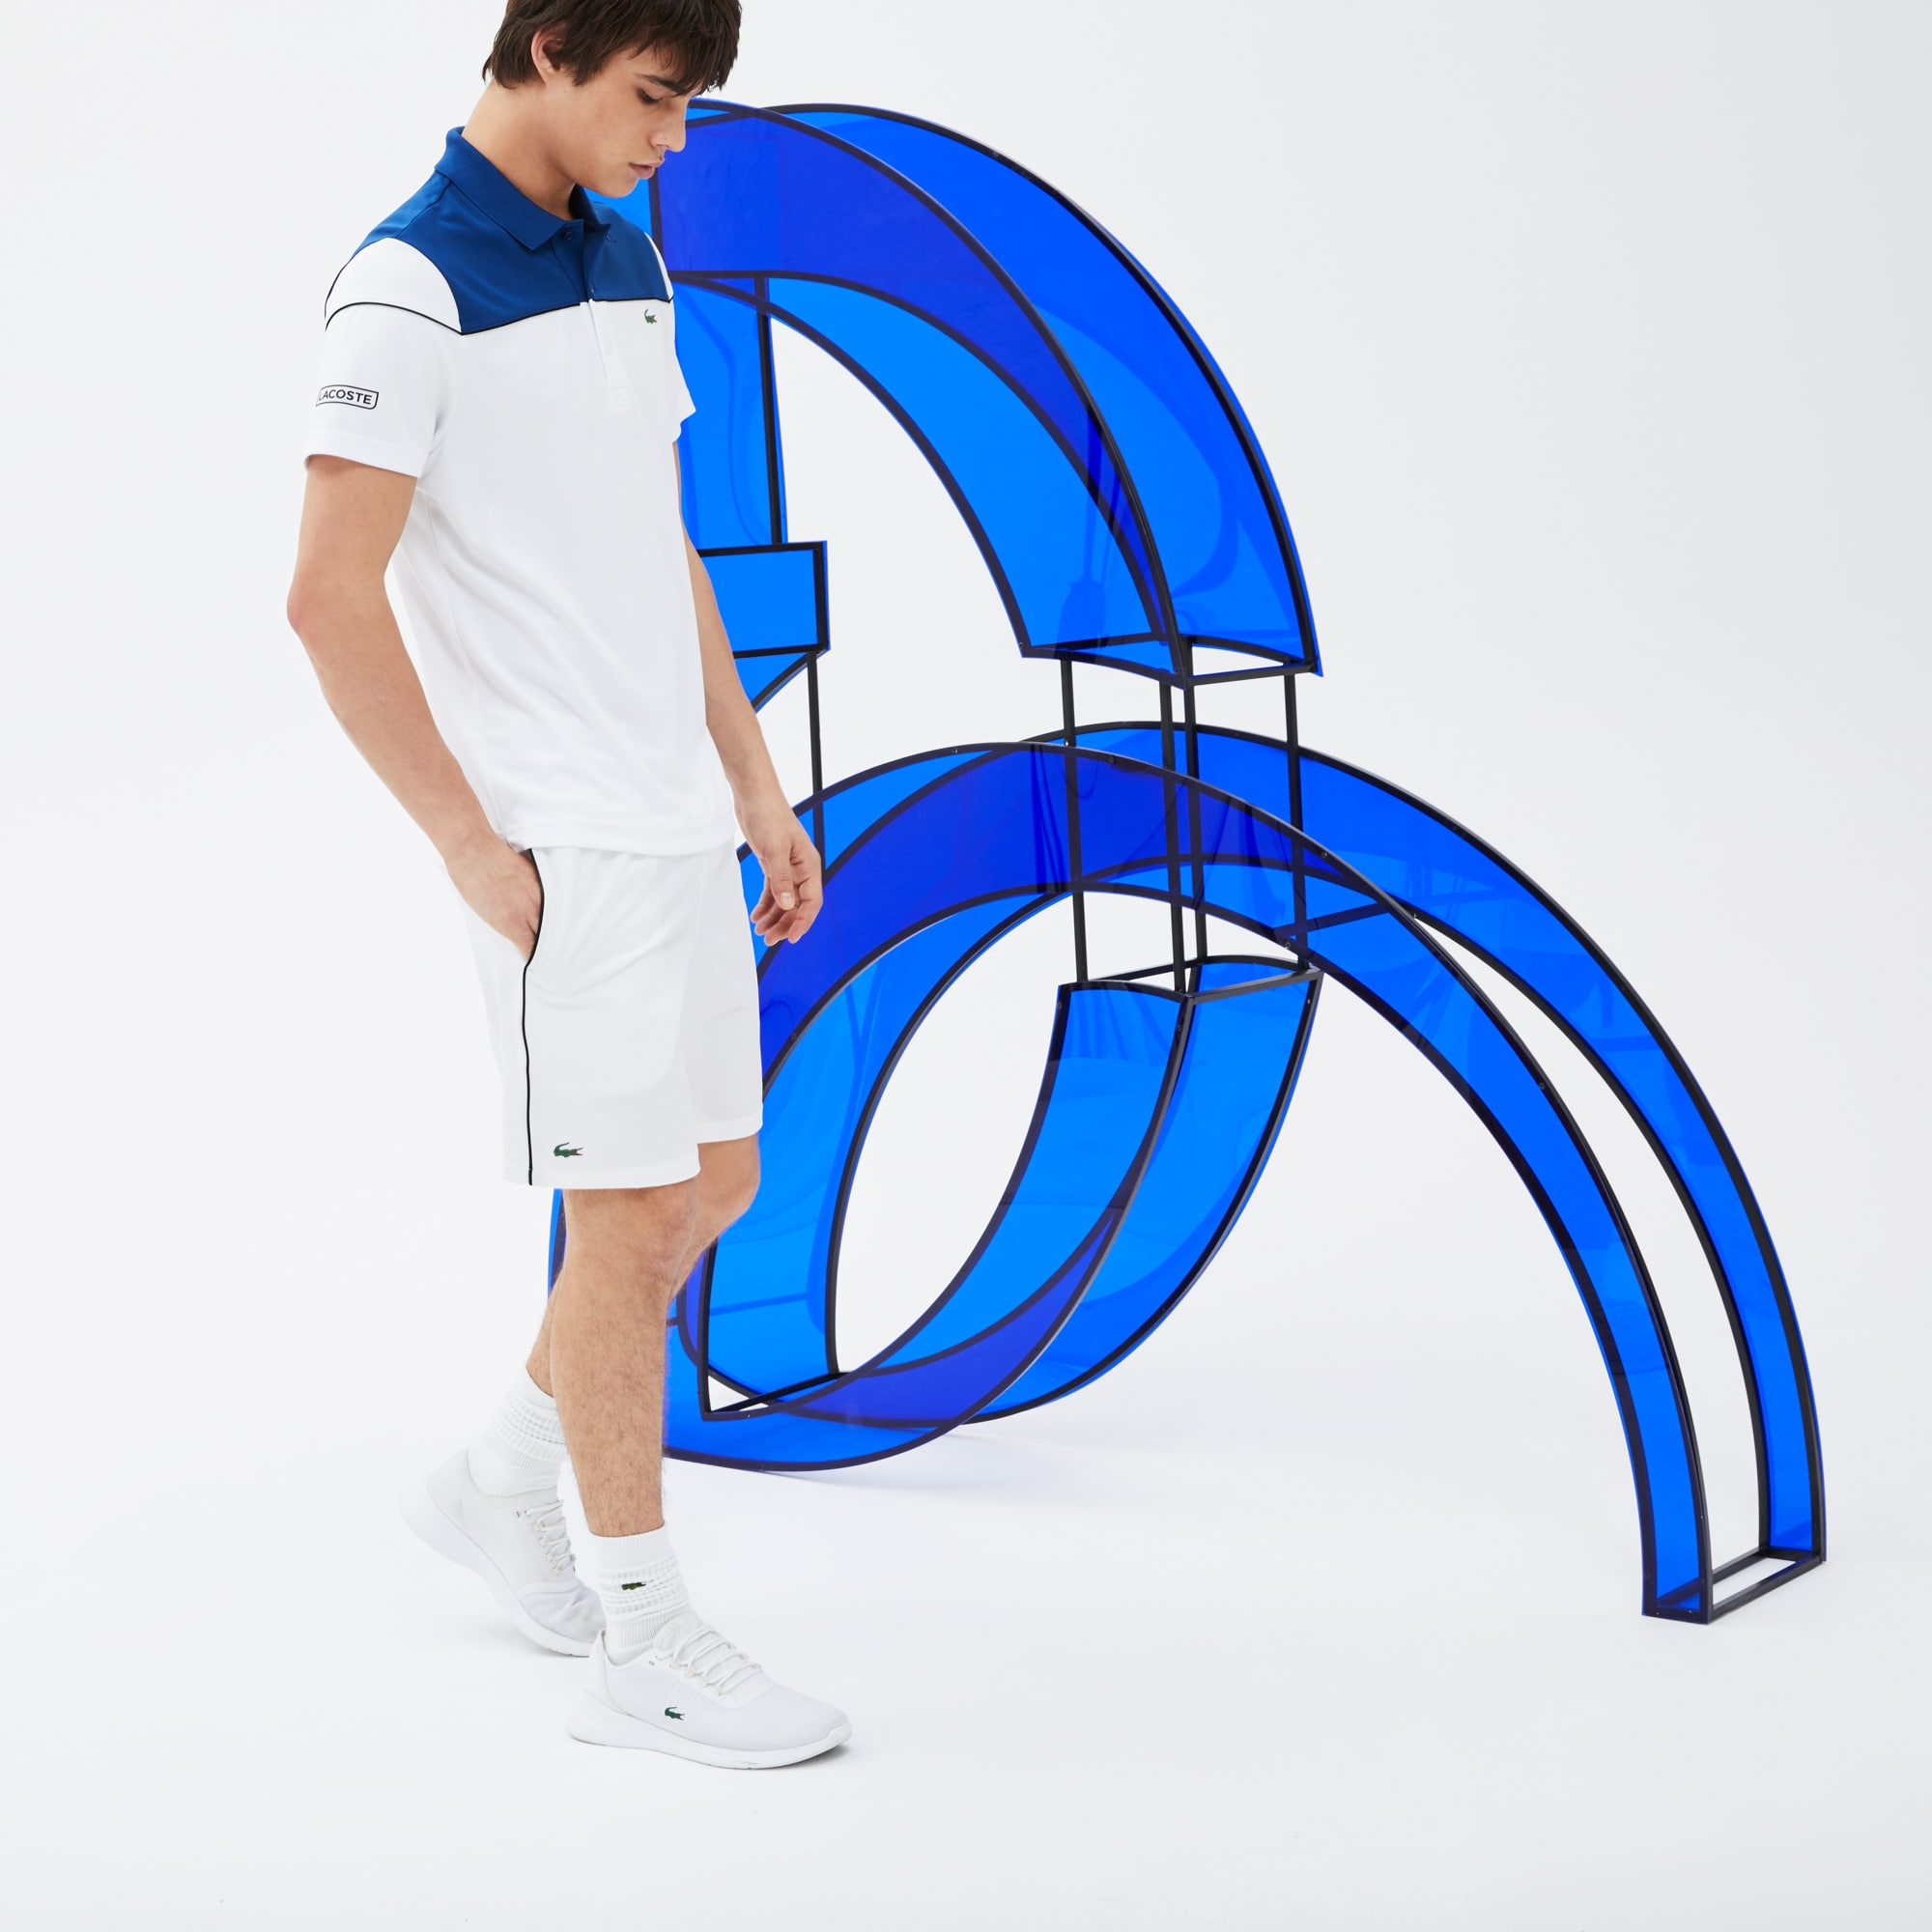 Polo LACOSTE SPORT COLLECTION NOVAK DJOKOVIC en piqué technique color block